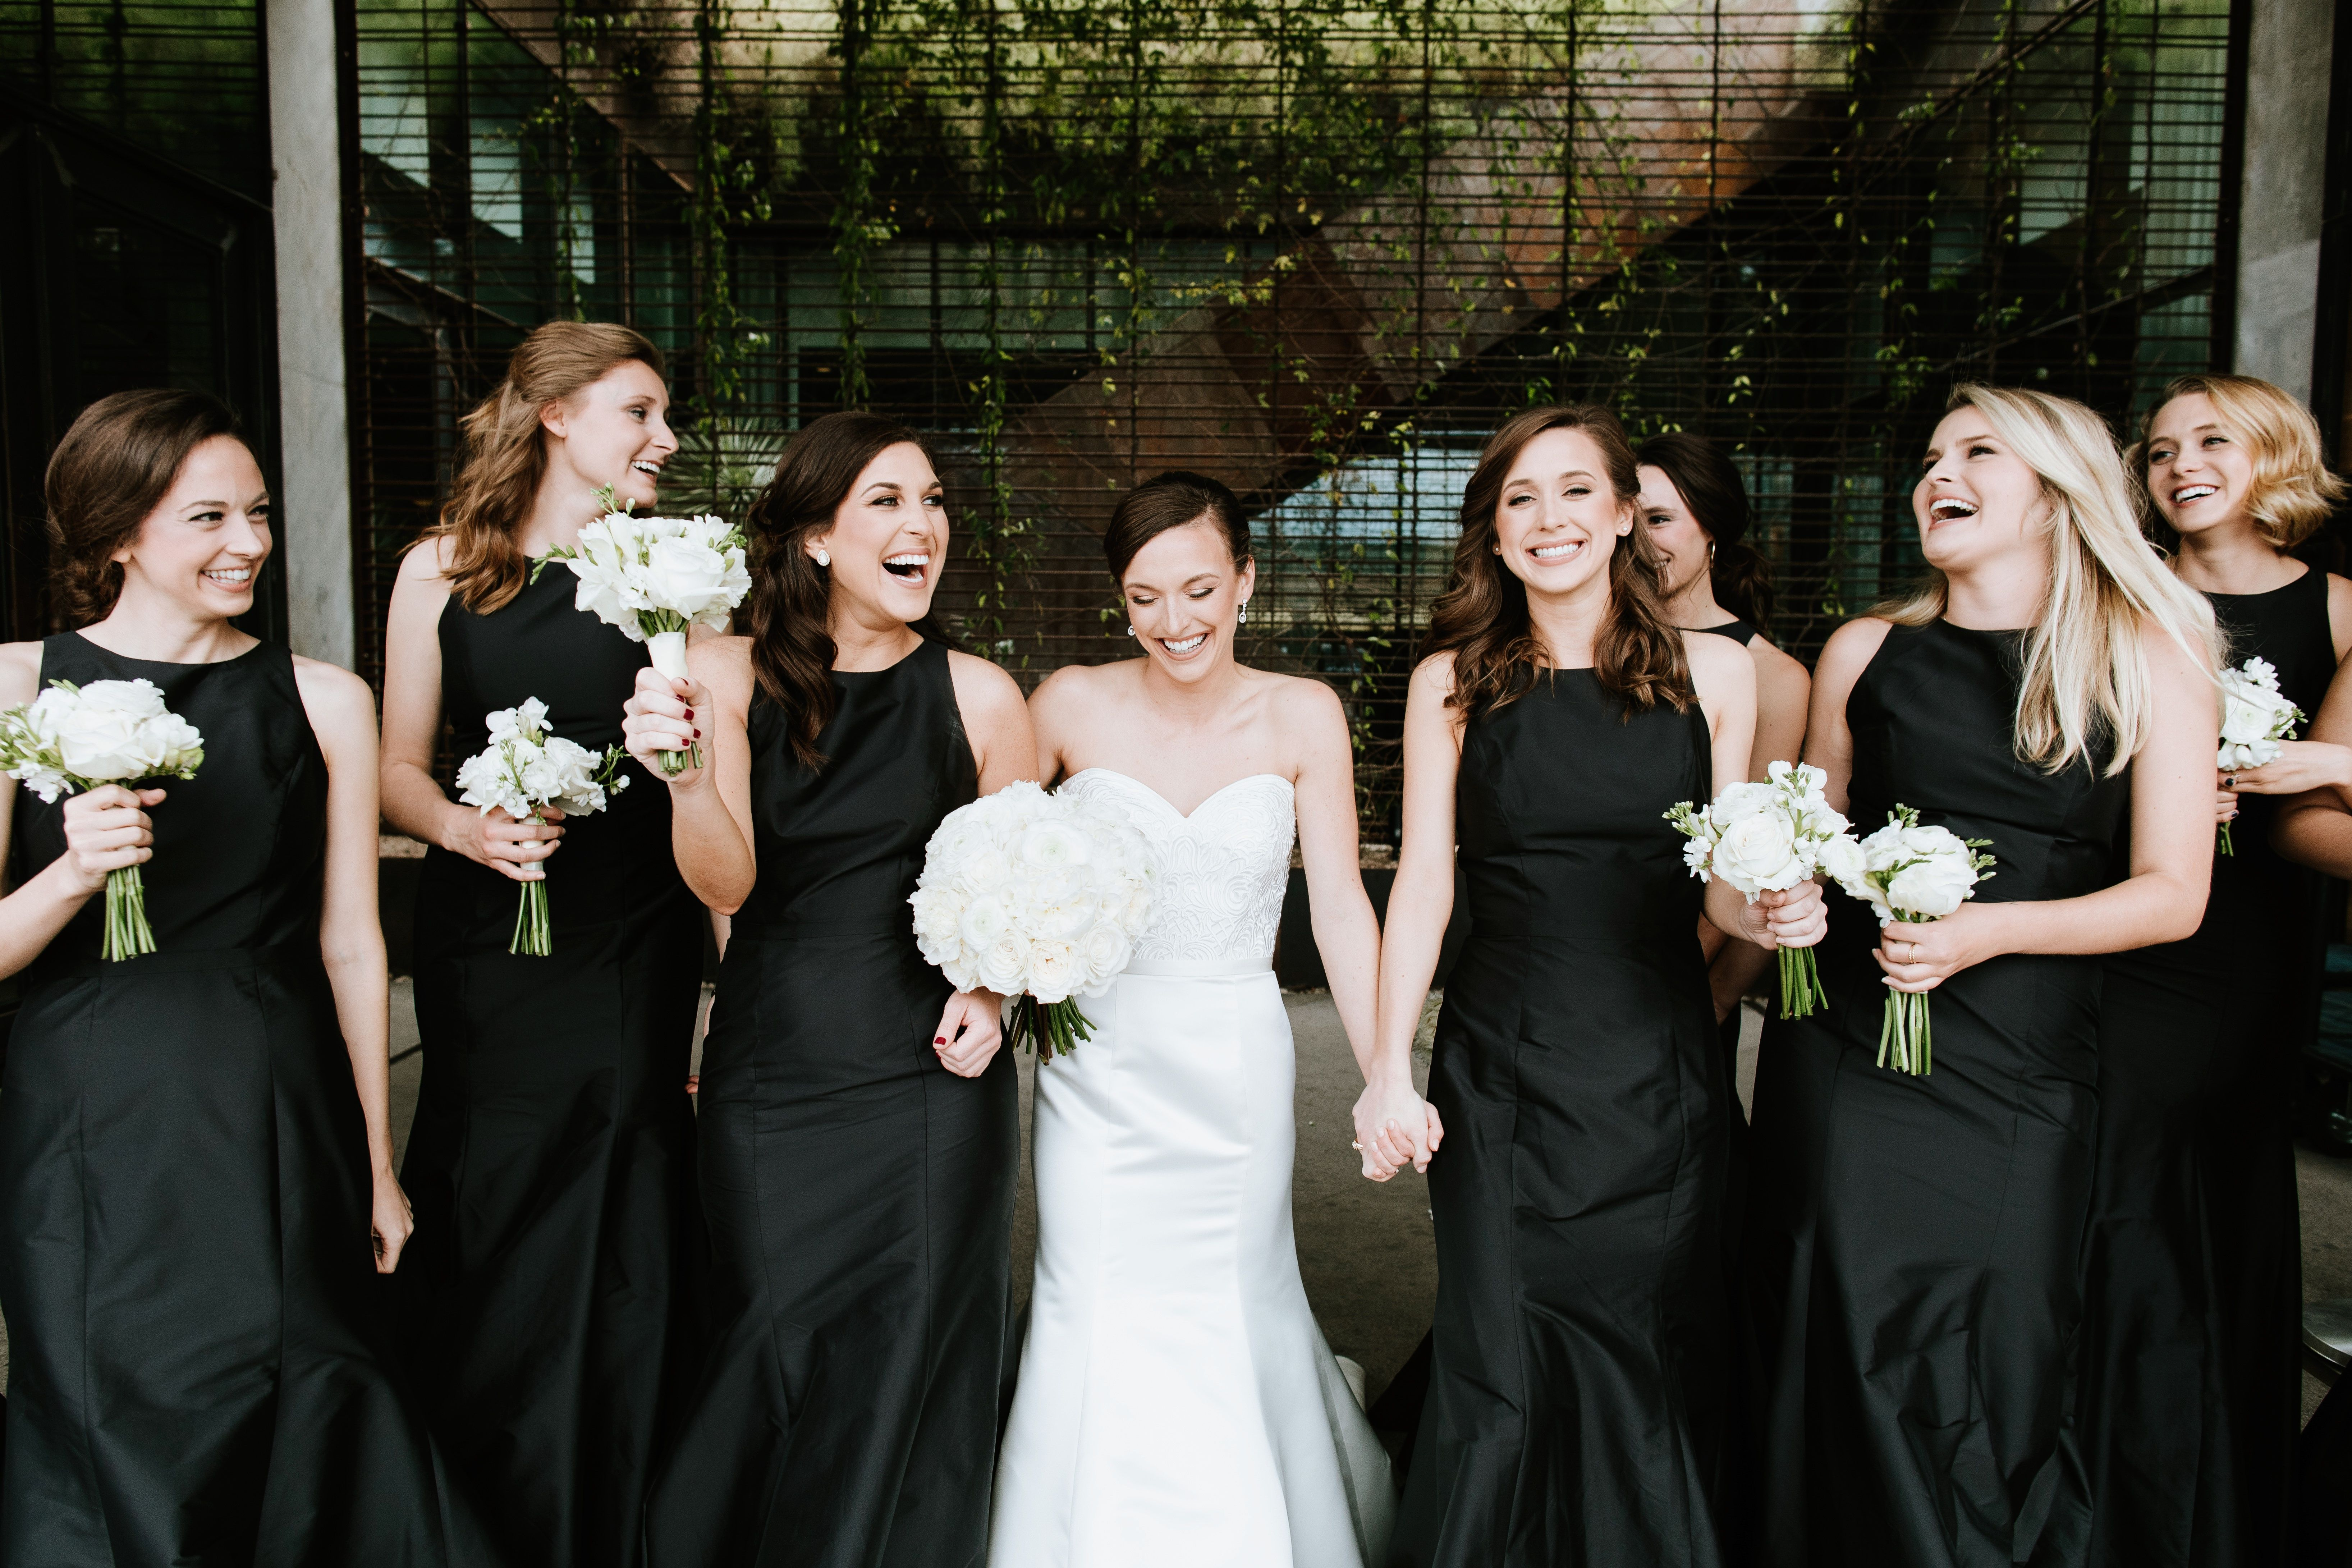 Bridesmaids before the wedding at South Congress Hotel in